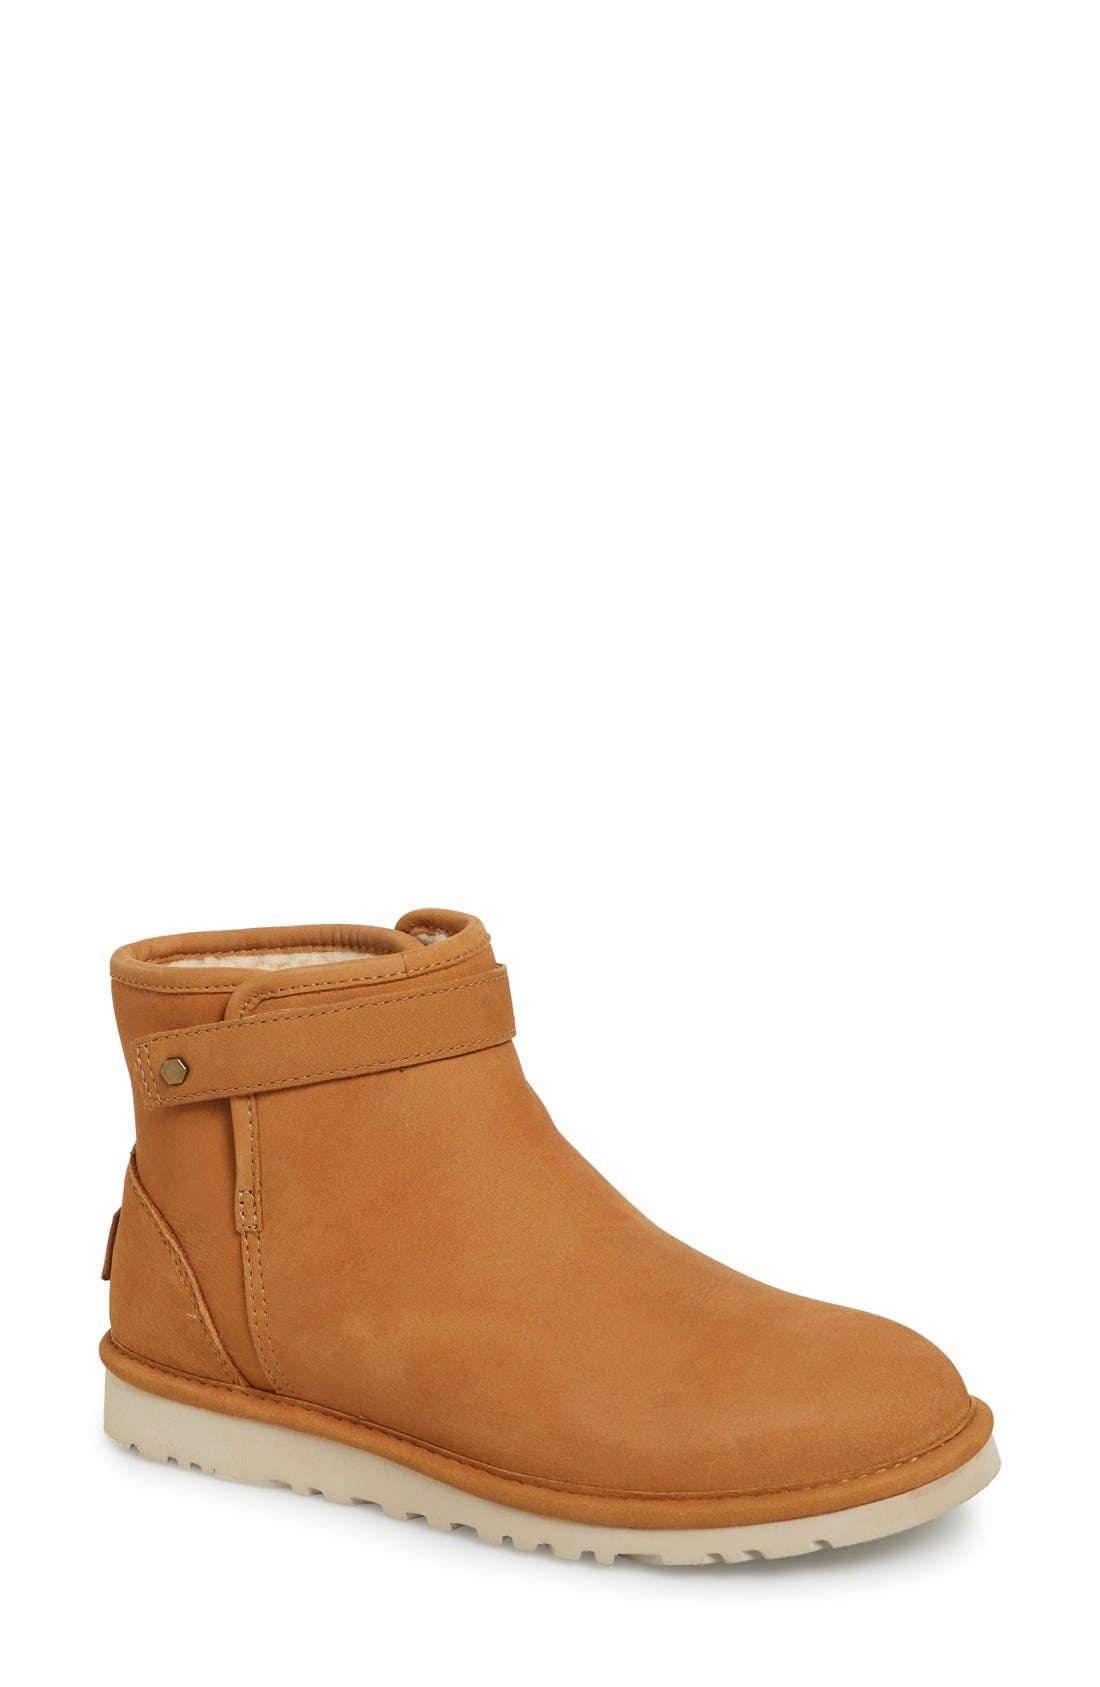 'Rella' Leather Ankle Boot,                         Main,                         color, 219